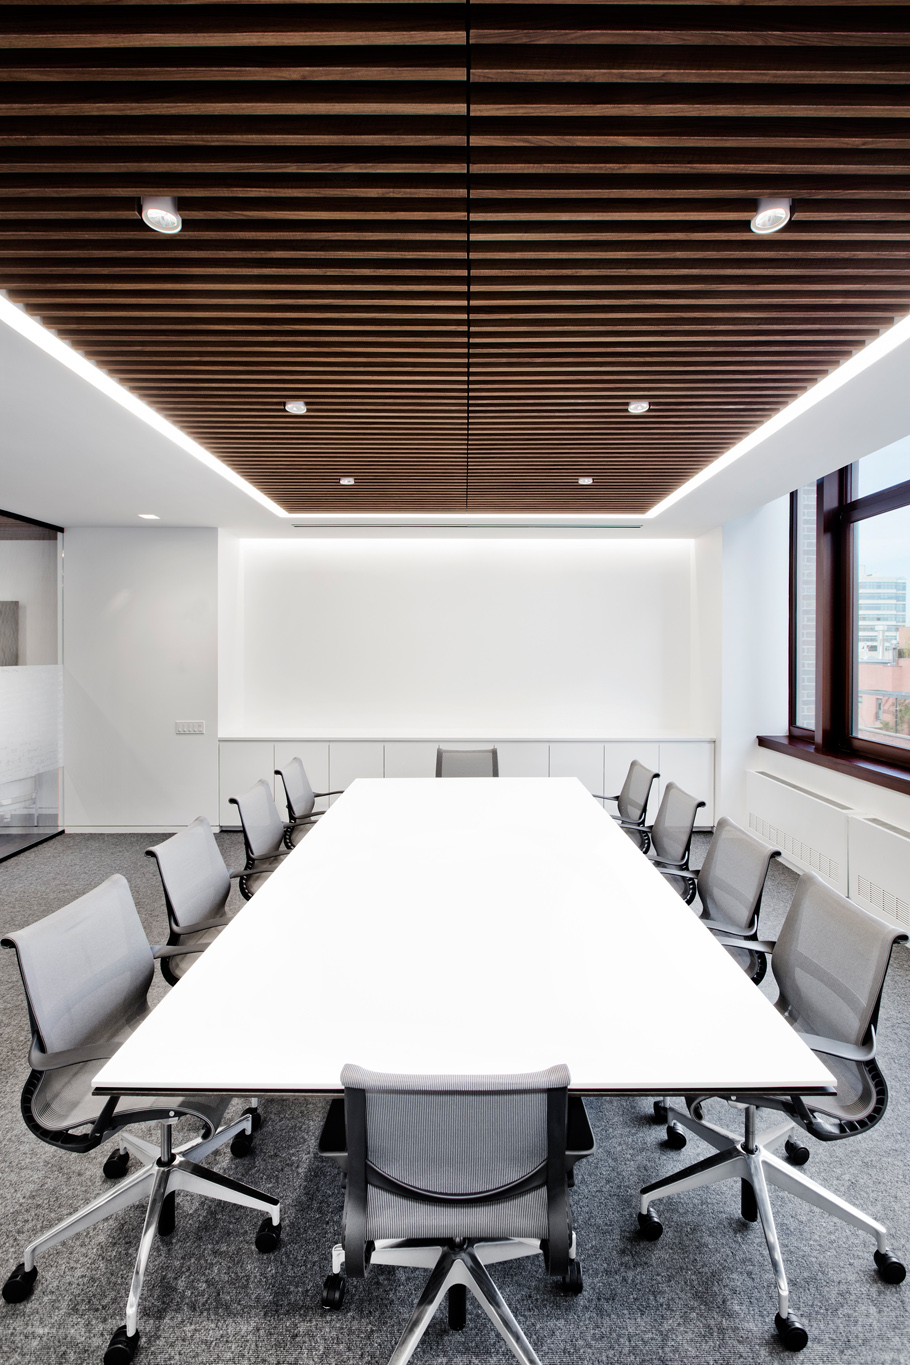 Fogarty finger hap capital for Meeting room interior design ideas